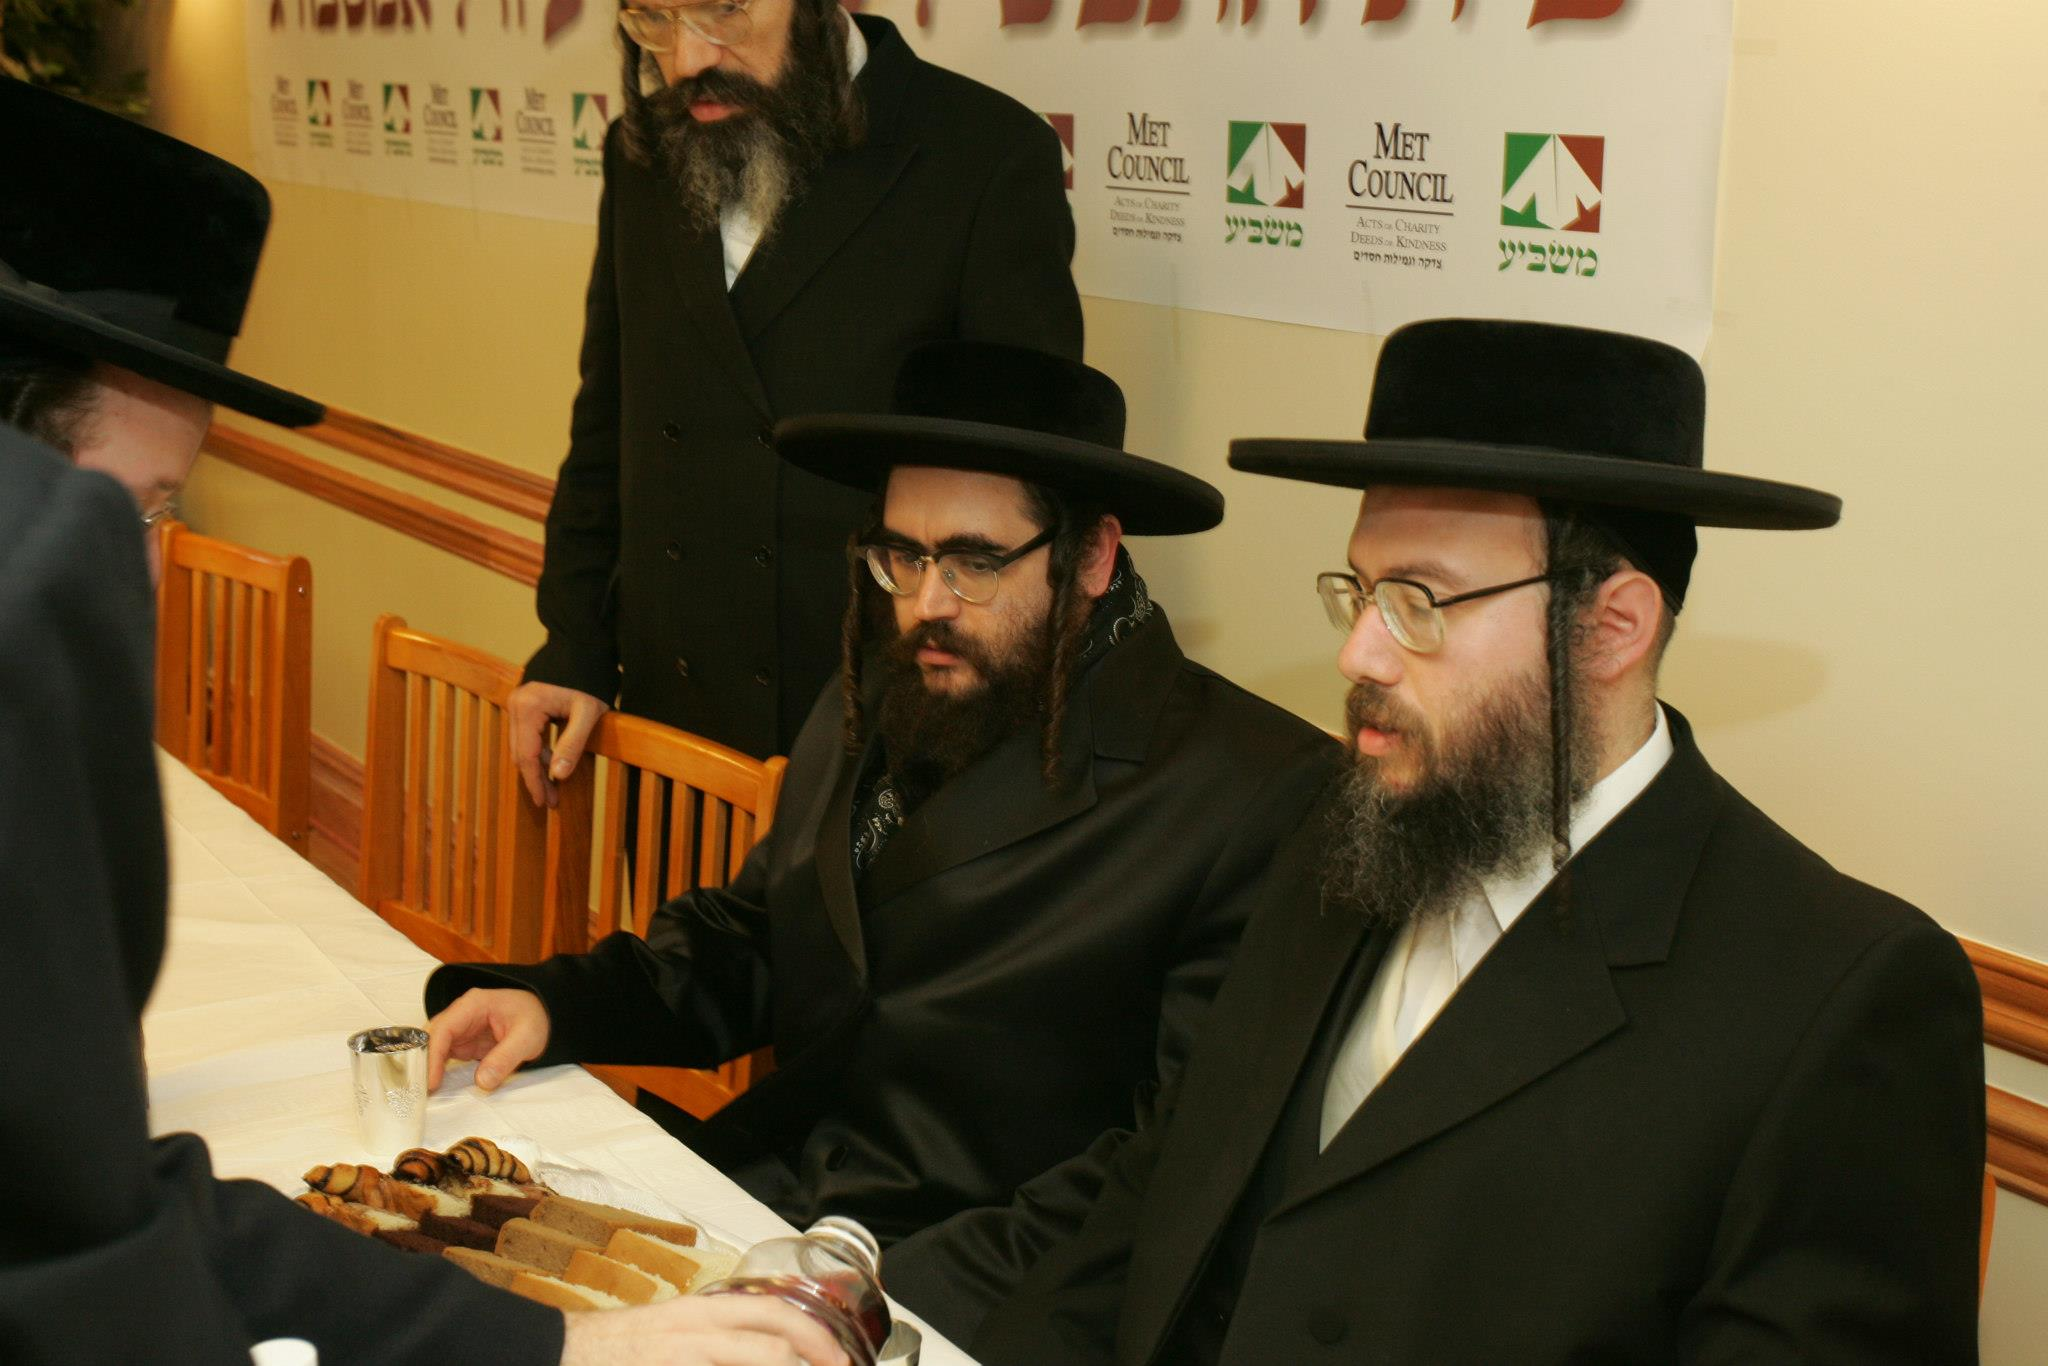 Masbia_Supporter__Rabbi_Mendel_Teitelbaum_of_Satmar_of_Williamsburg__visiting_Masbia_of_Williamsburg.jpg